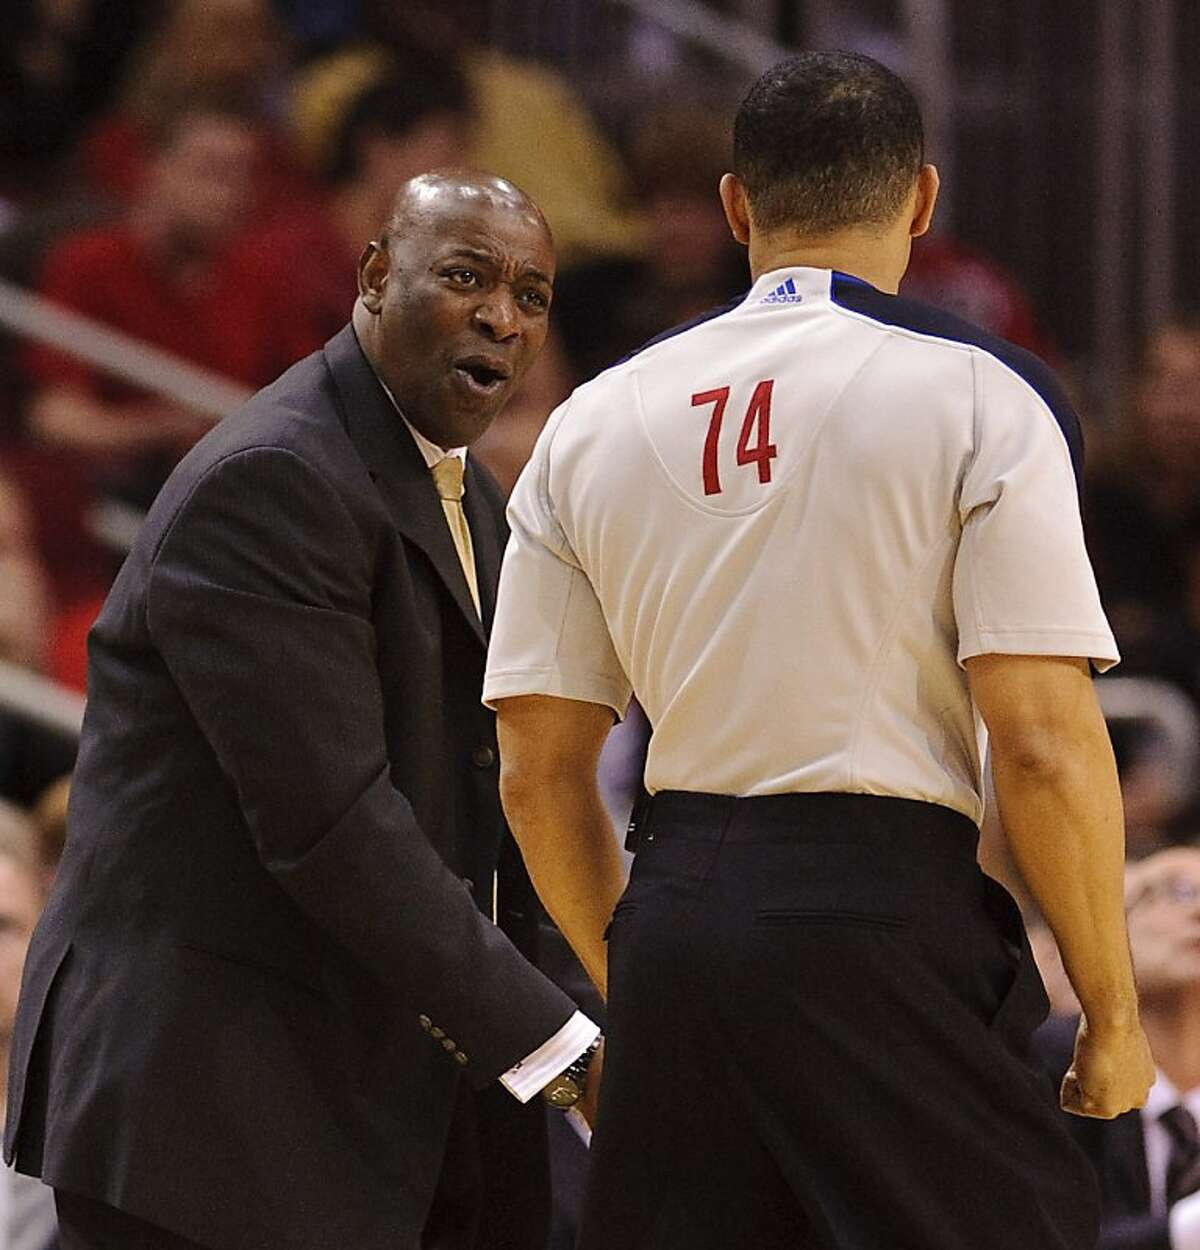 Golden State Warriors head coach Keith Smart, left, disputes a call with referee Curtis Blair (74) during the third quarter of an NBA basketball game against the Houston Rockets, Wednesday, March 23, 2011, in Houston. The Rockets beat the Warriors 131-112.